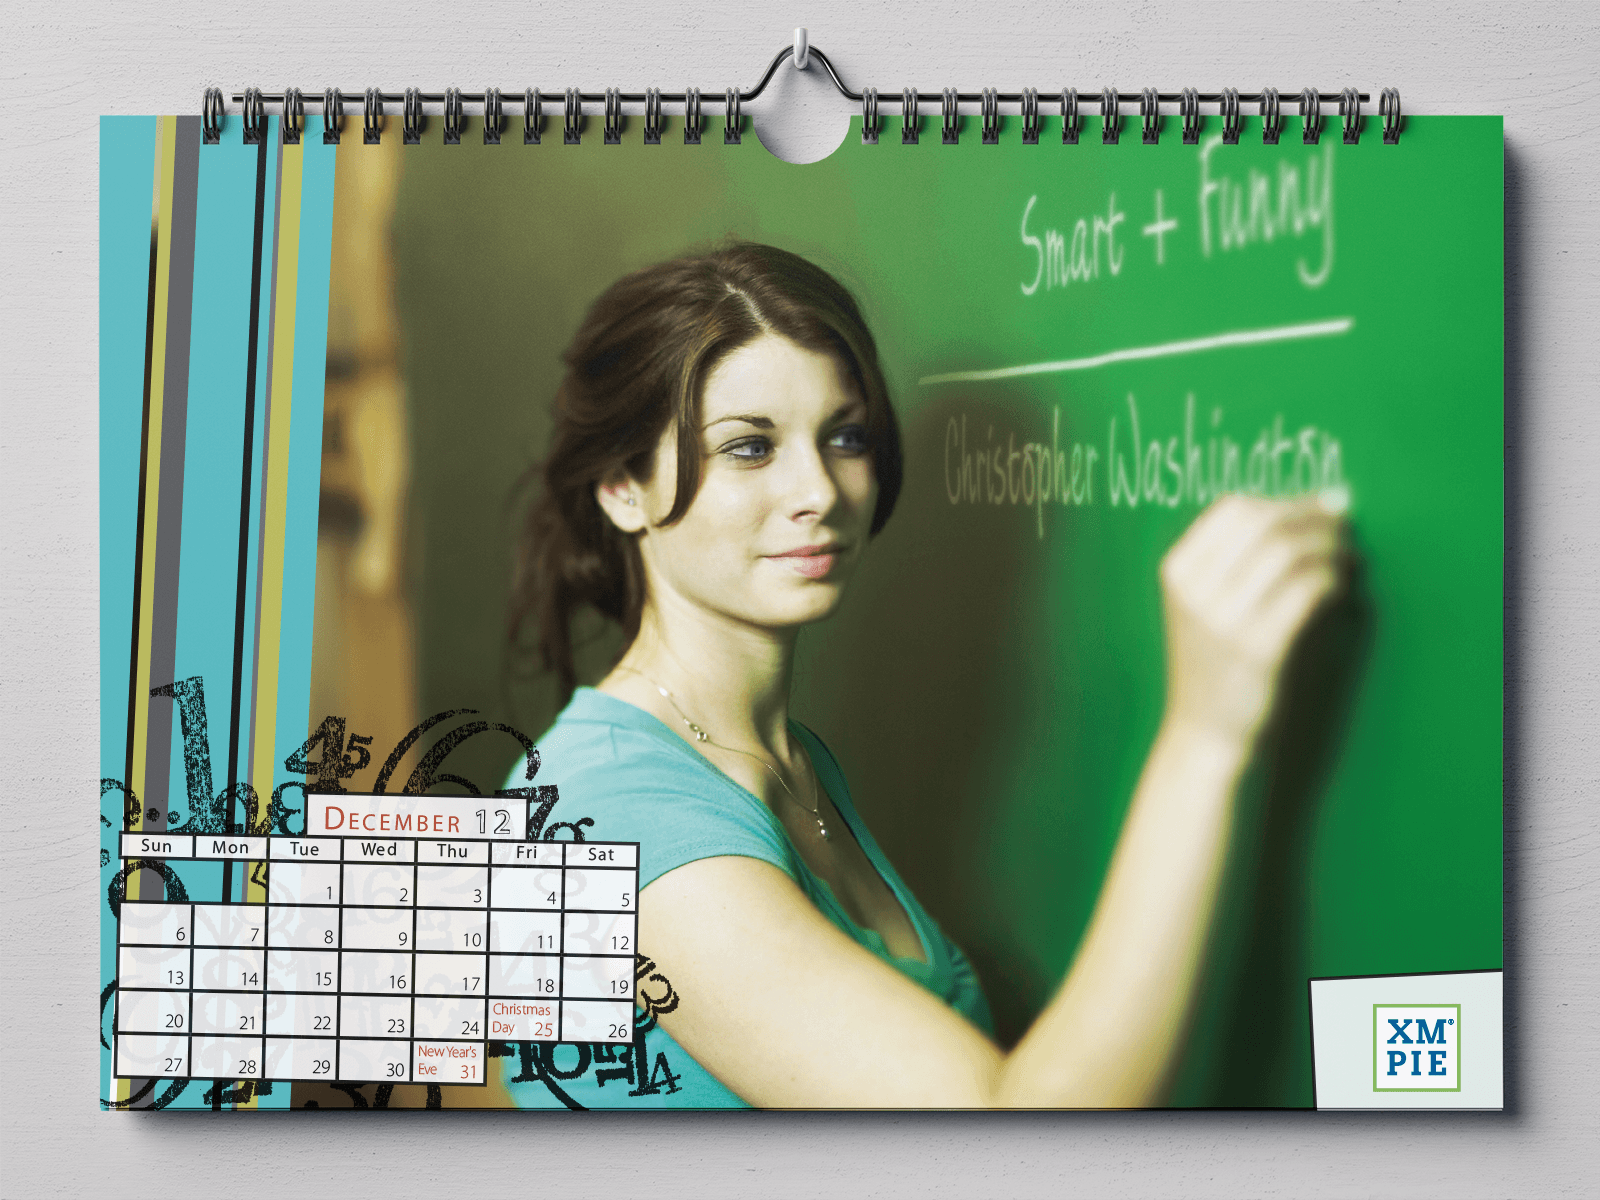 http://bigeyes.co.il/wp-content/uploads/2019/07/college-calendar-13.png